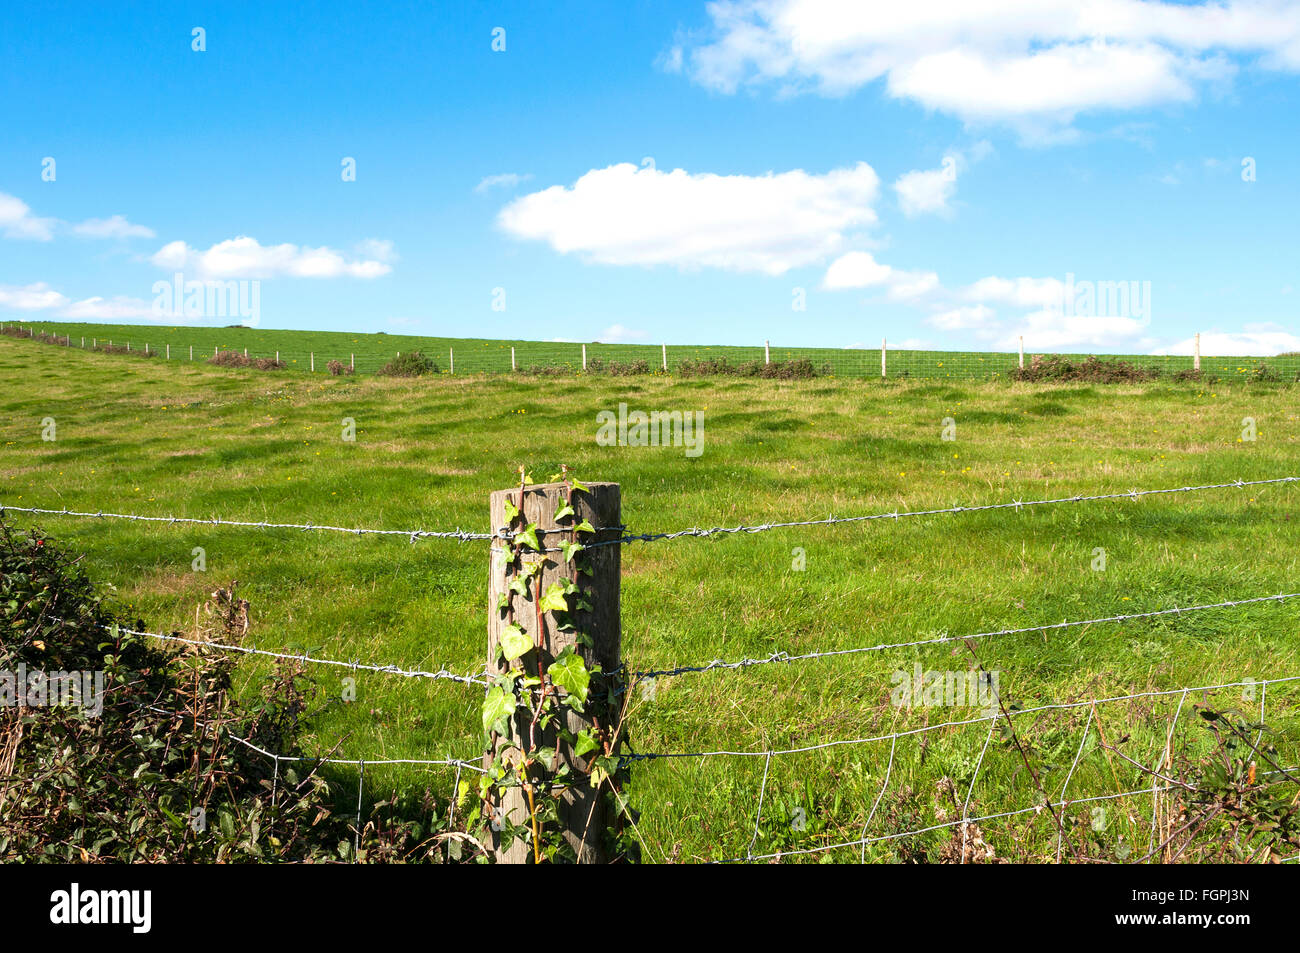 an empty pasture field with barbed wire fence Stock Photo